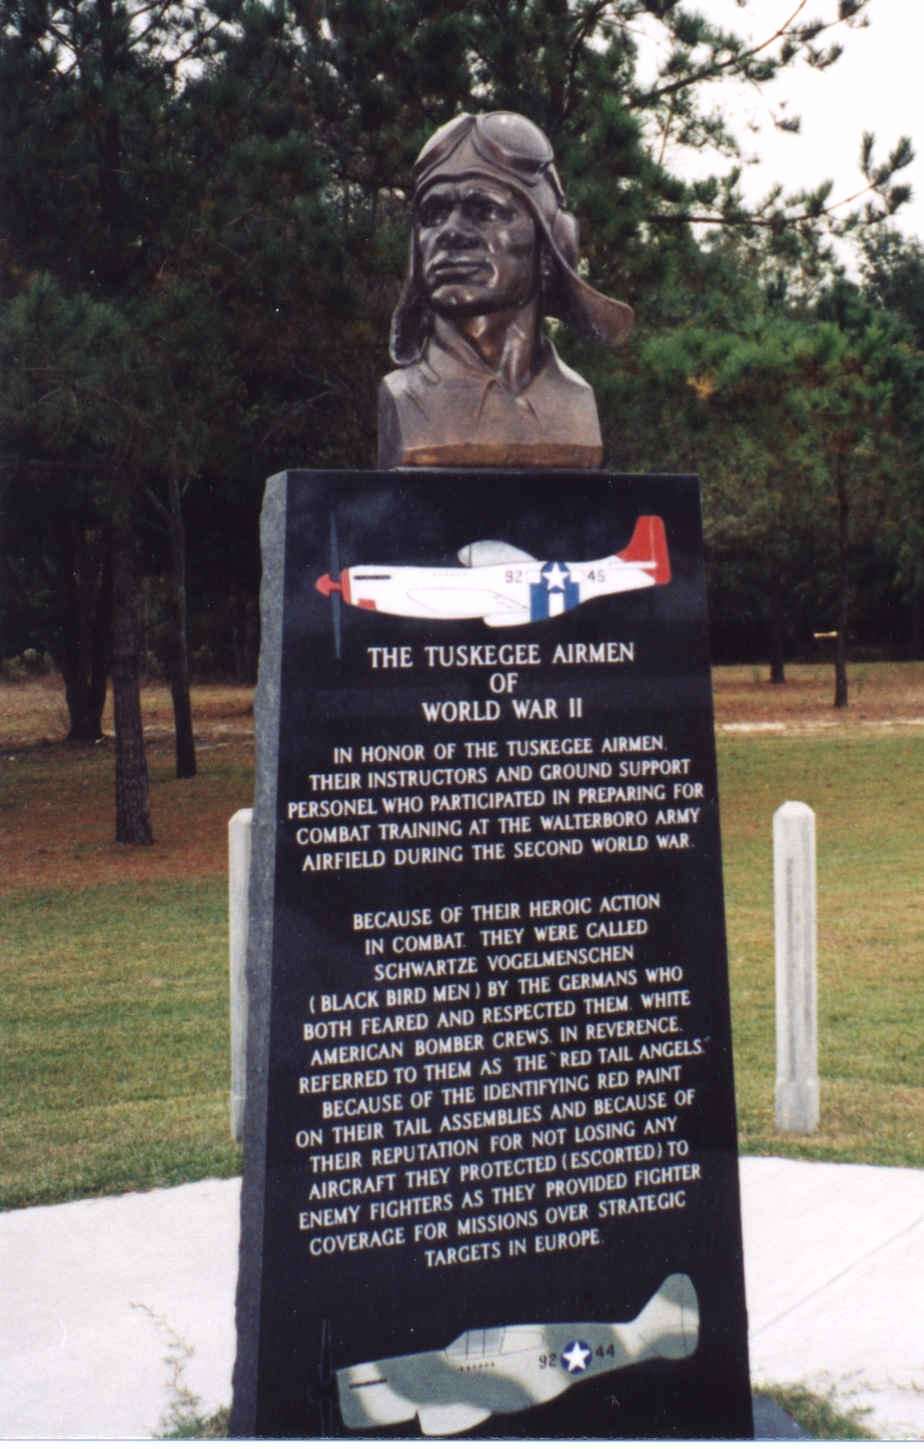 Tuskegee Airman Memorial Monument - Photo Courtesy: Jerry R. McRae, Tuskegee, Alabama